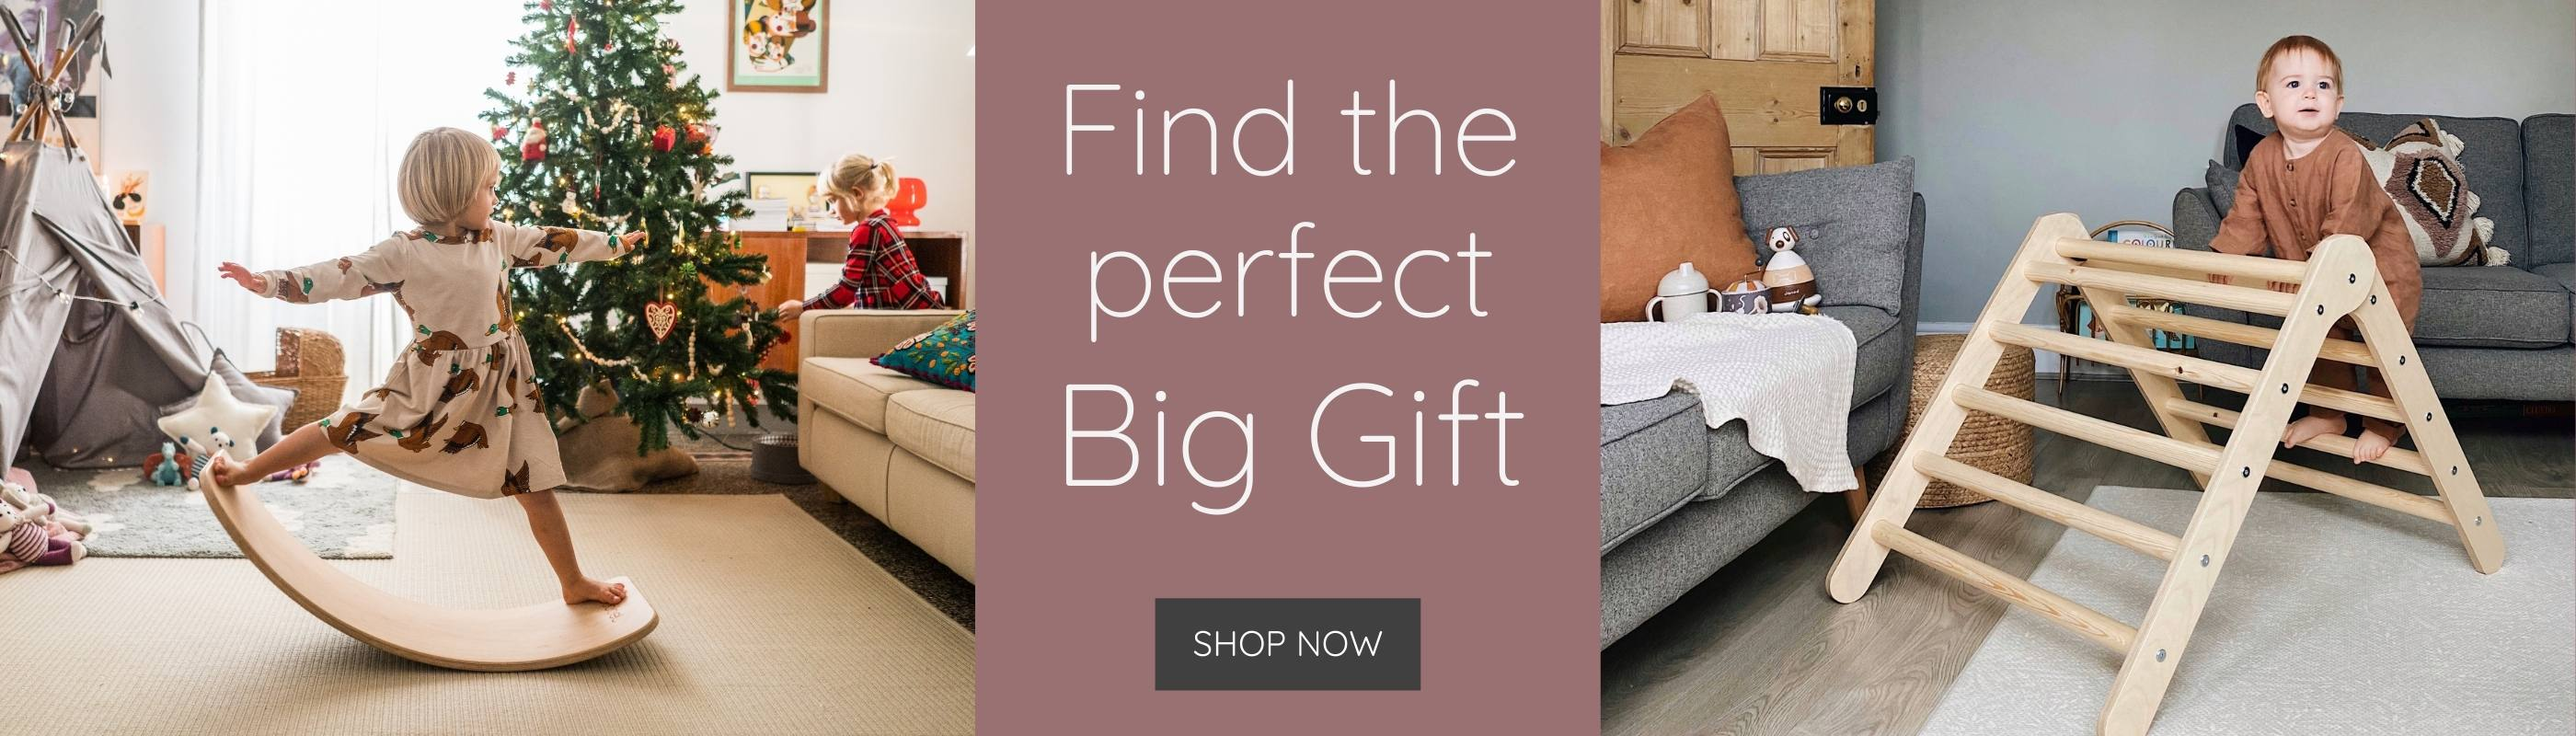 Find the perfect Big Gift for your little one